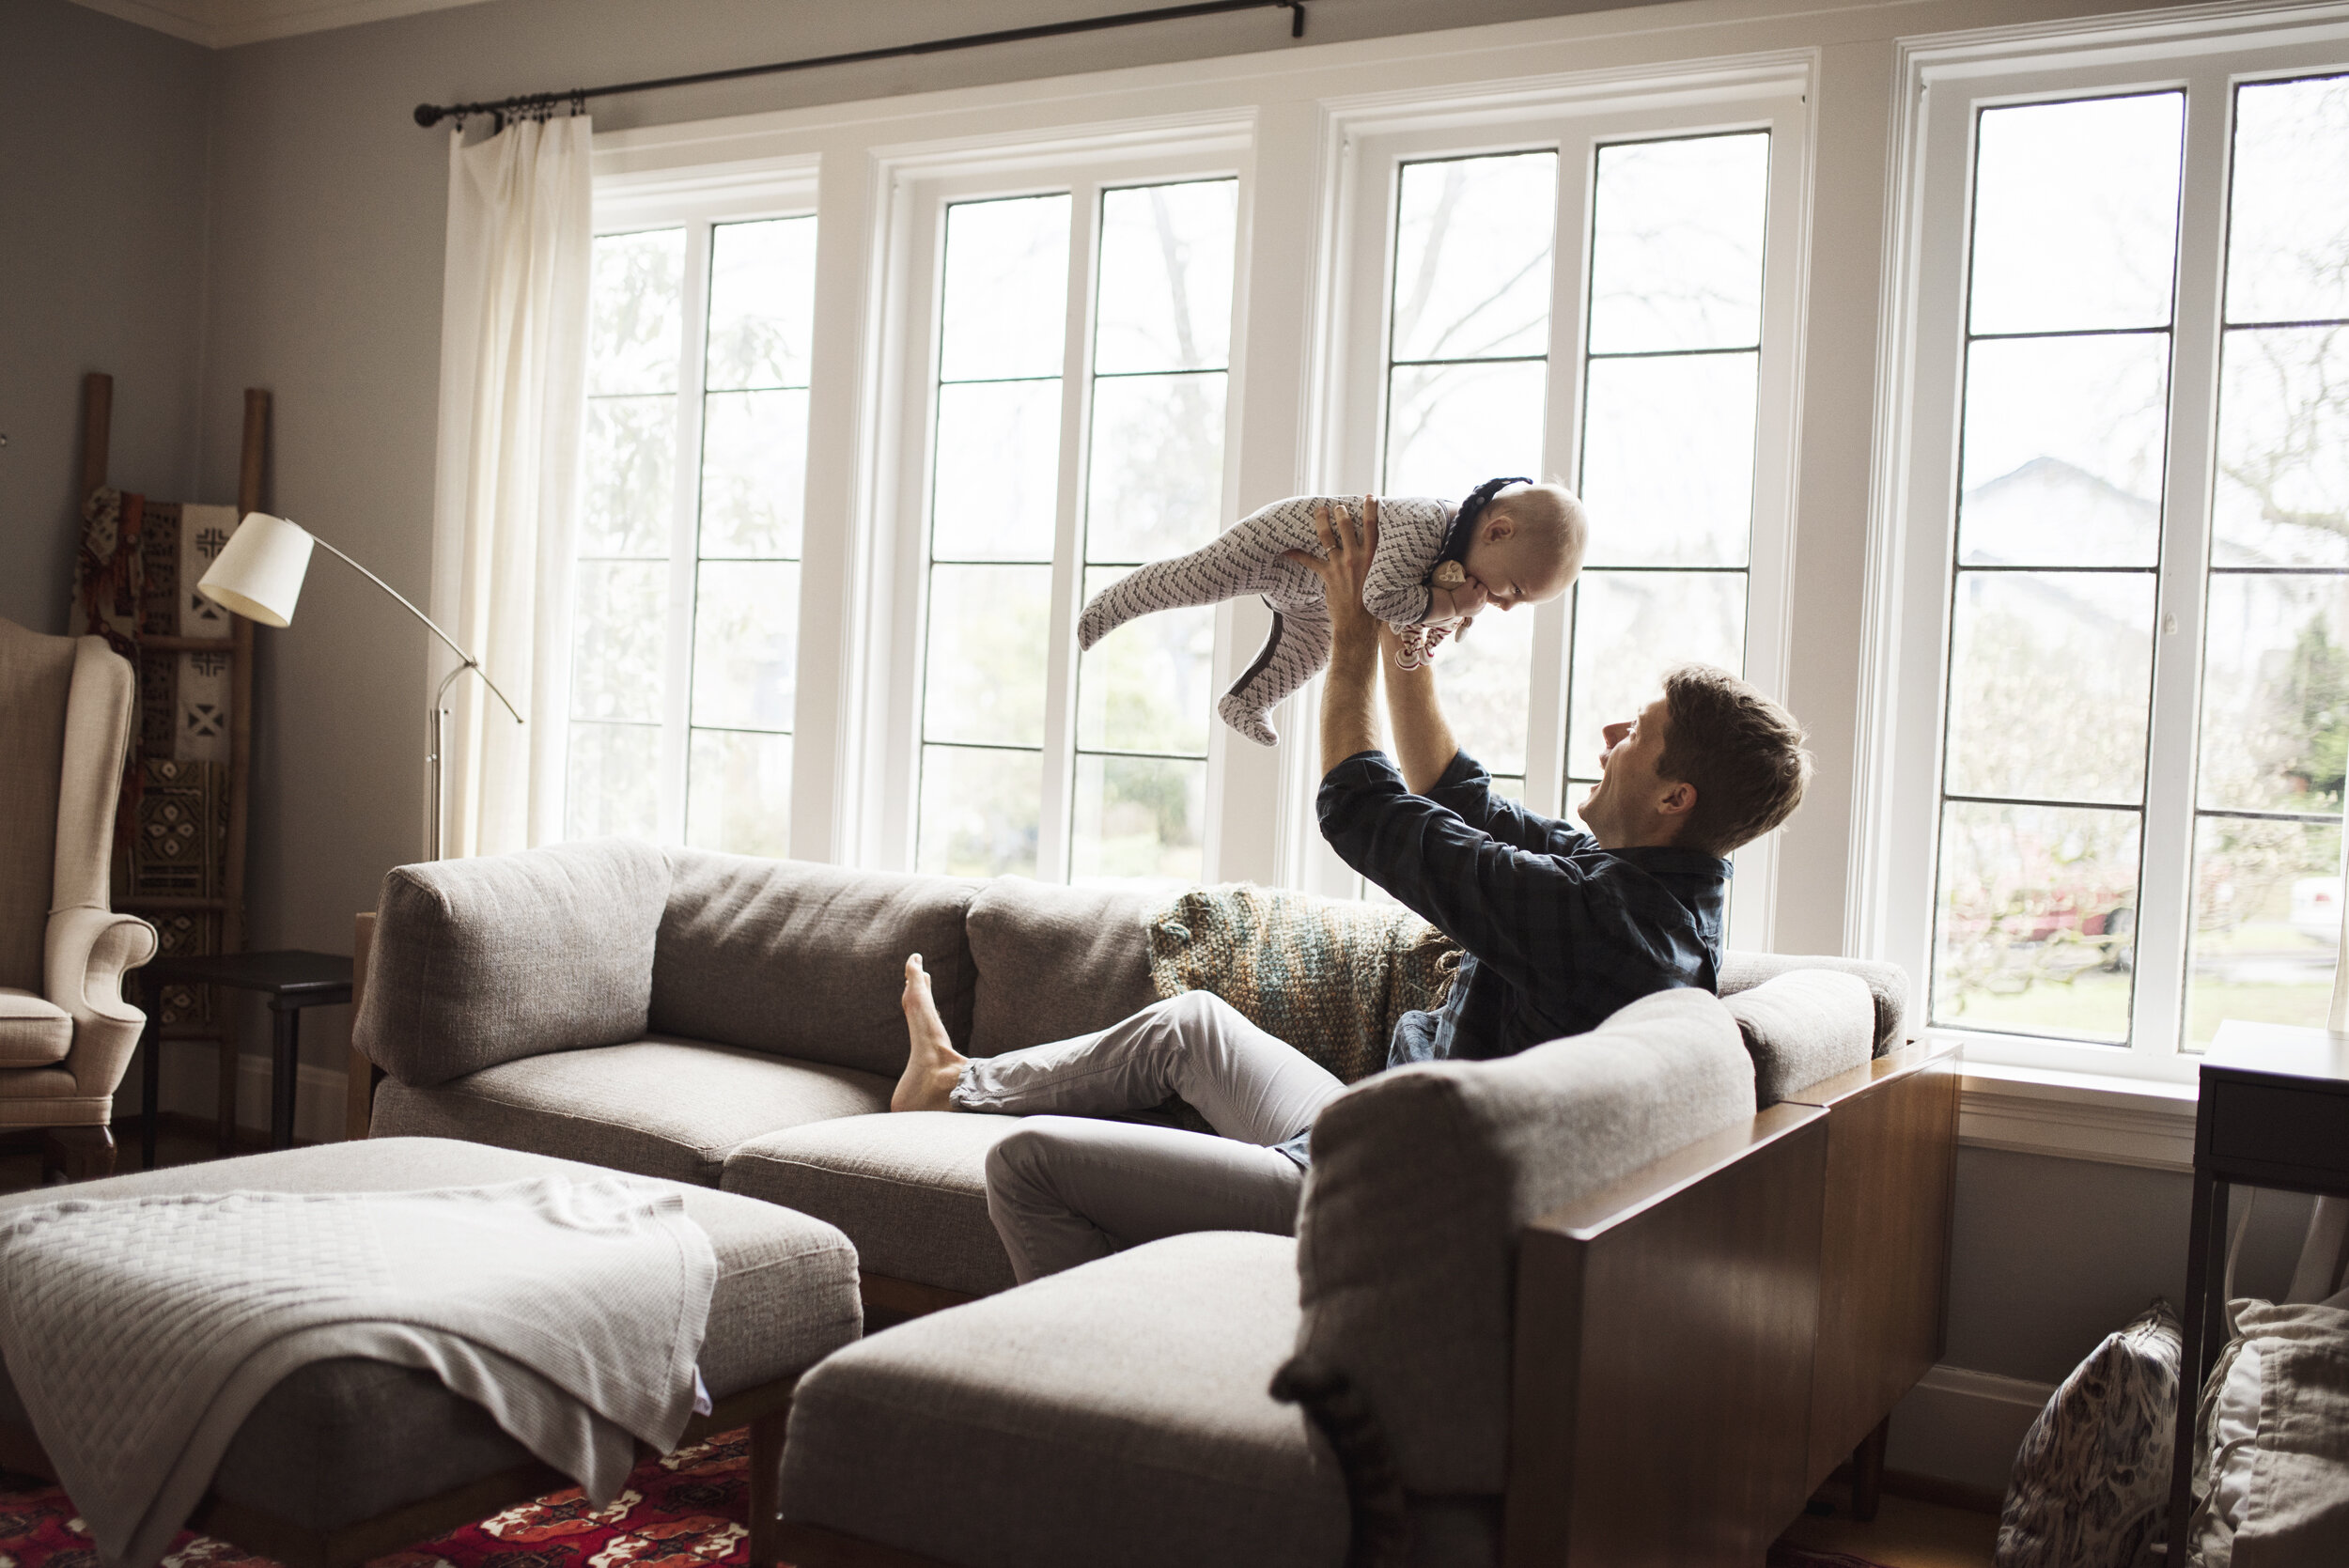 Edmonds family photographer dad is flying baby in air on couch